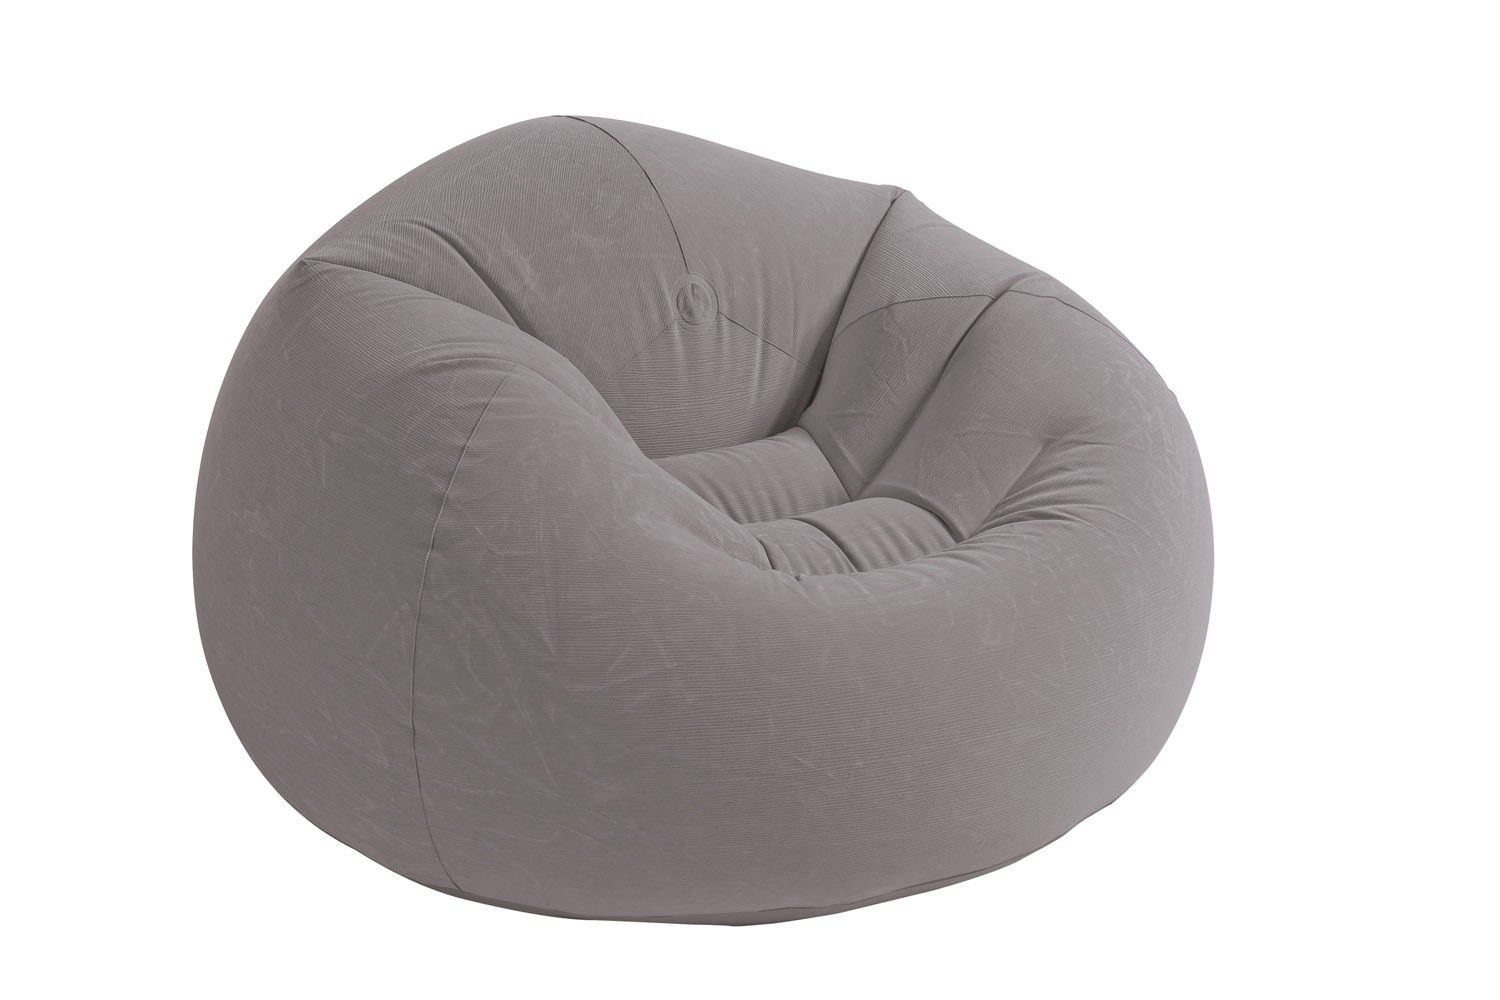 Amazon.com: Skroutz Chair Bean Bag Inflatable Furniture ...